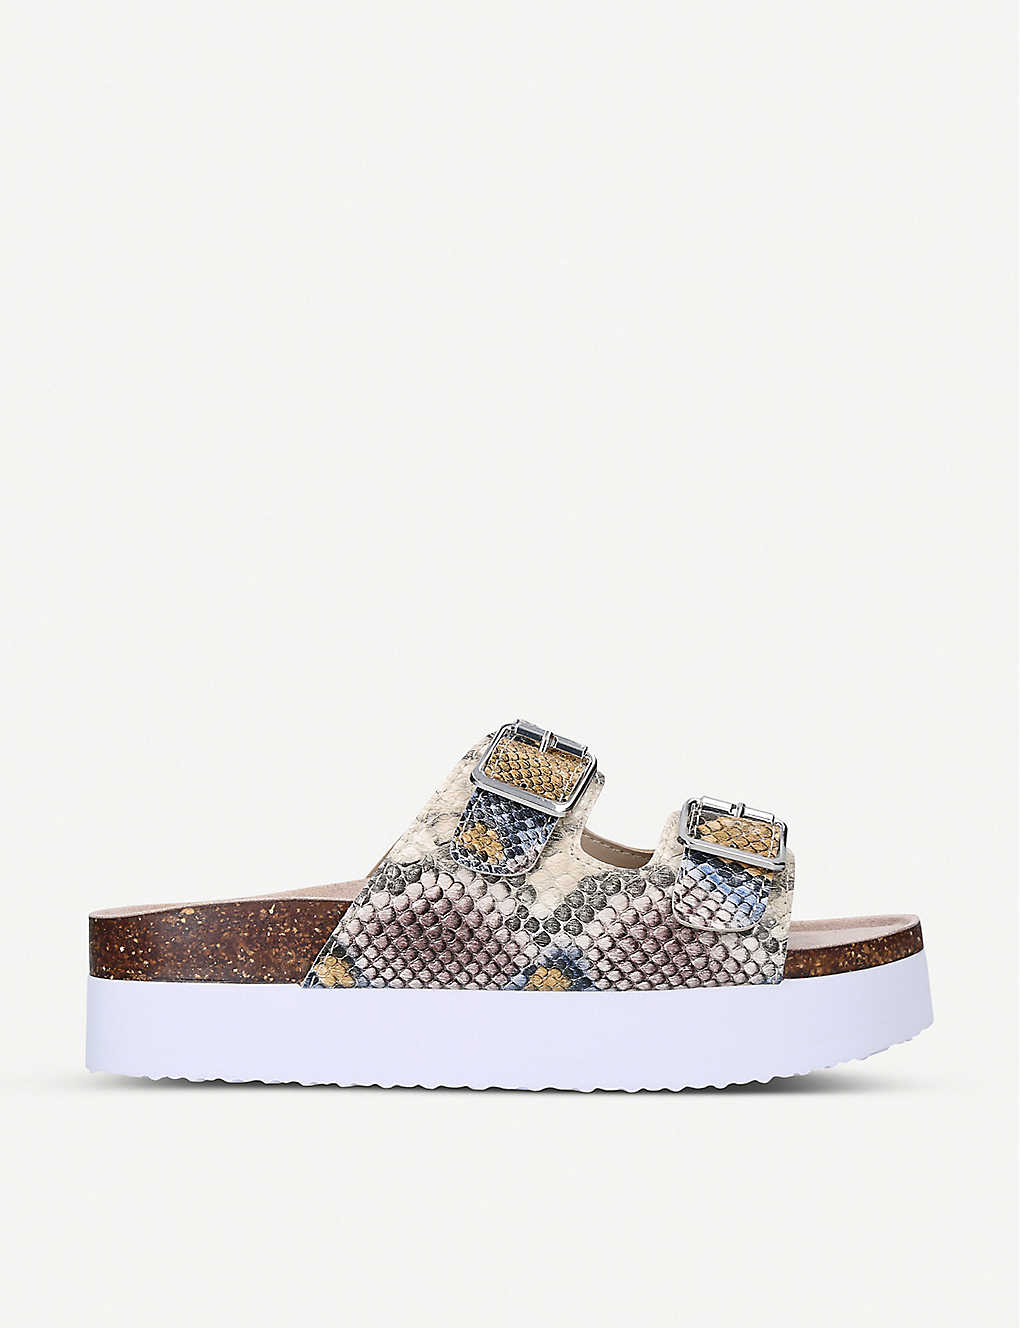 KG KURT GEIGER: Ruse snake-print leather flatform sliders